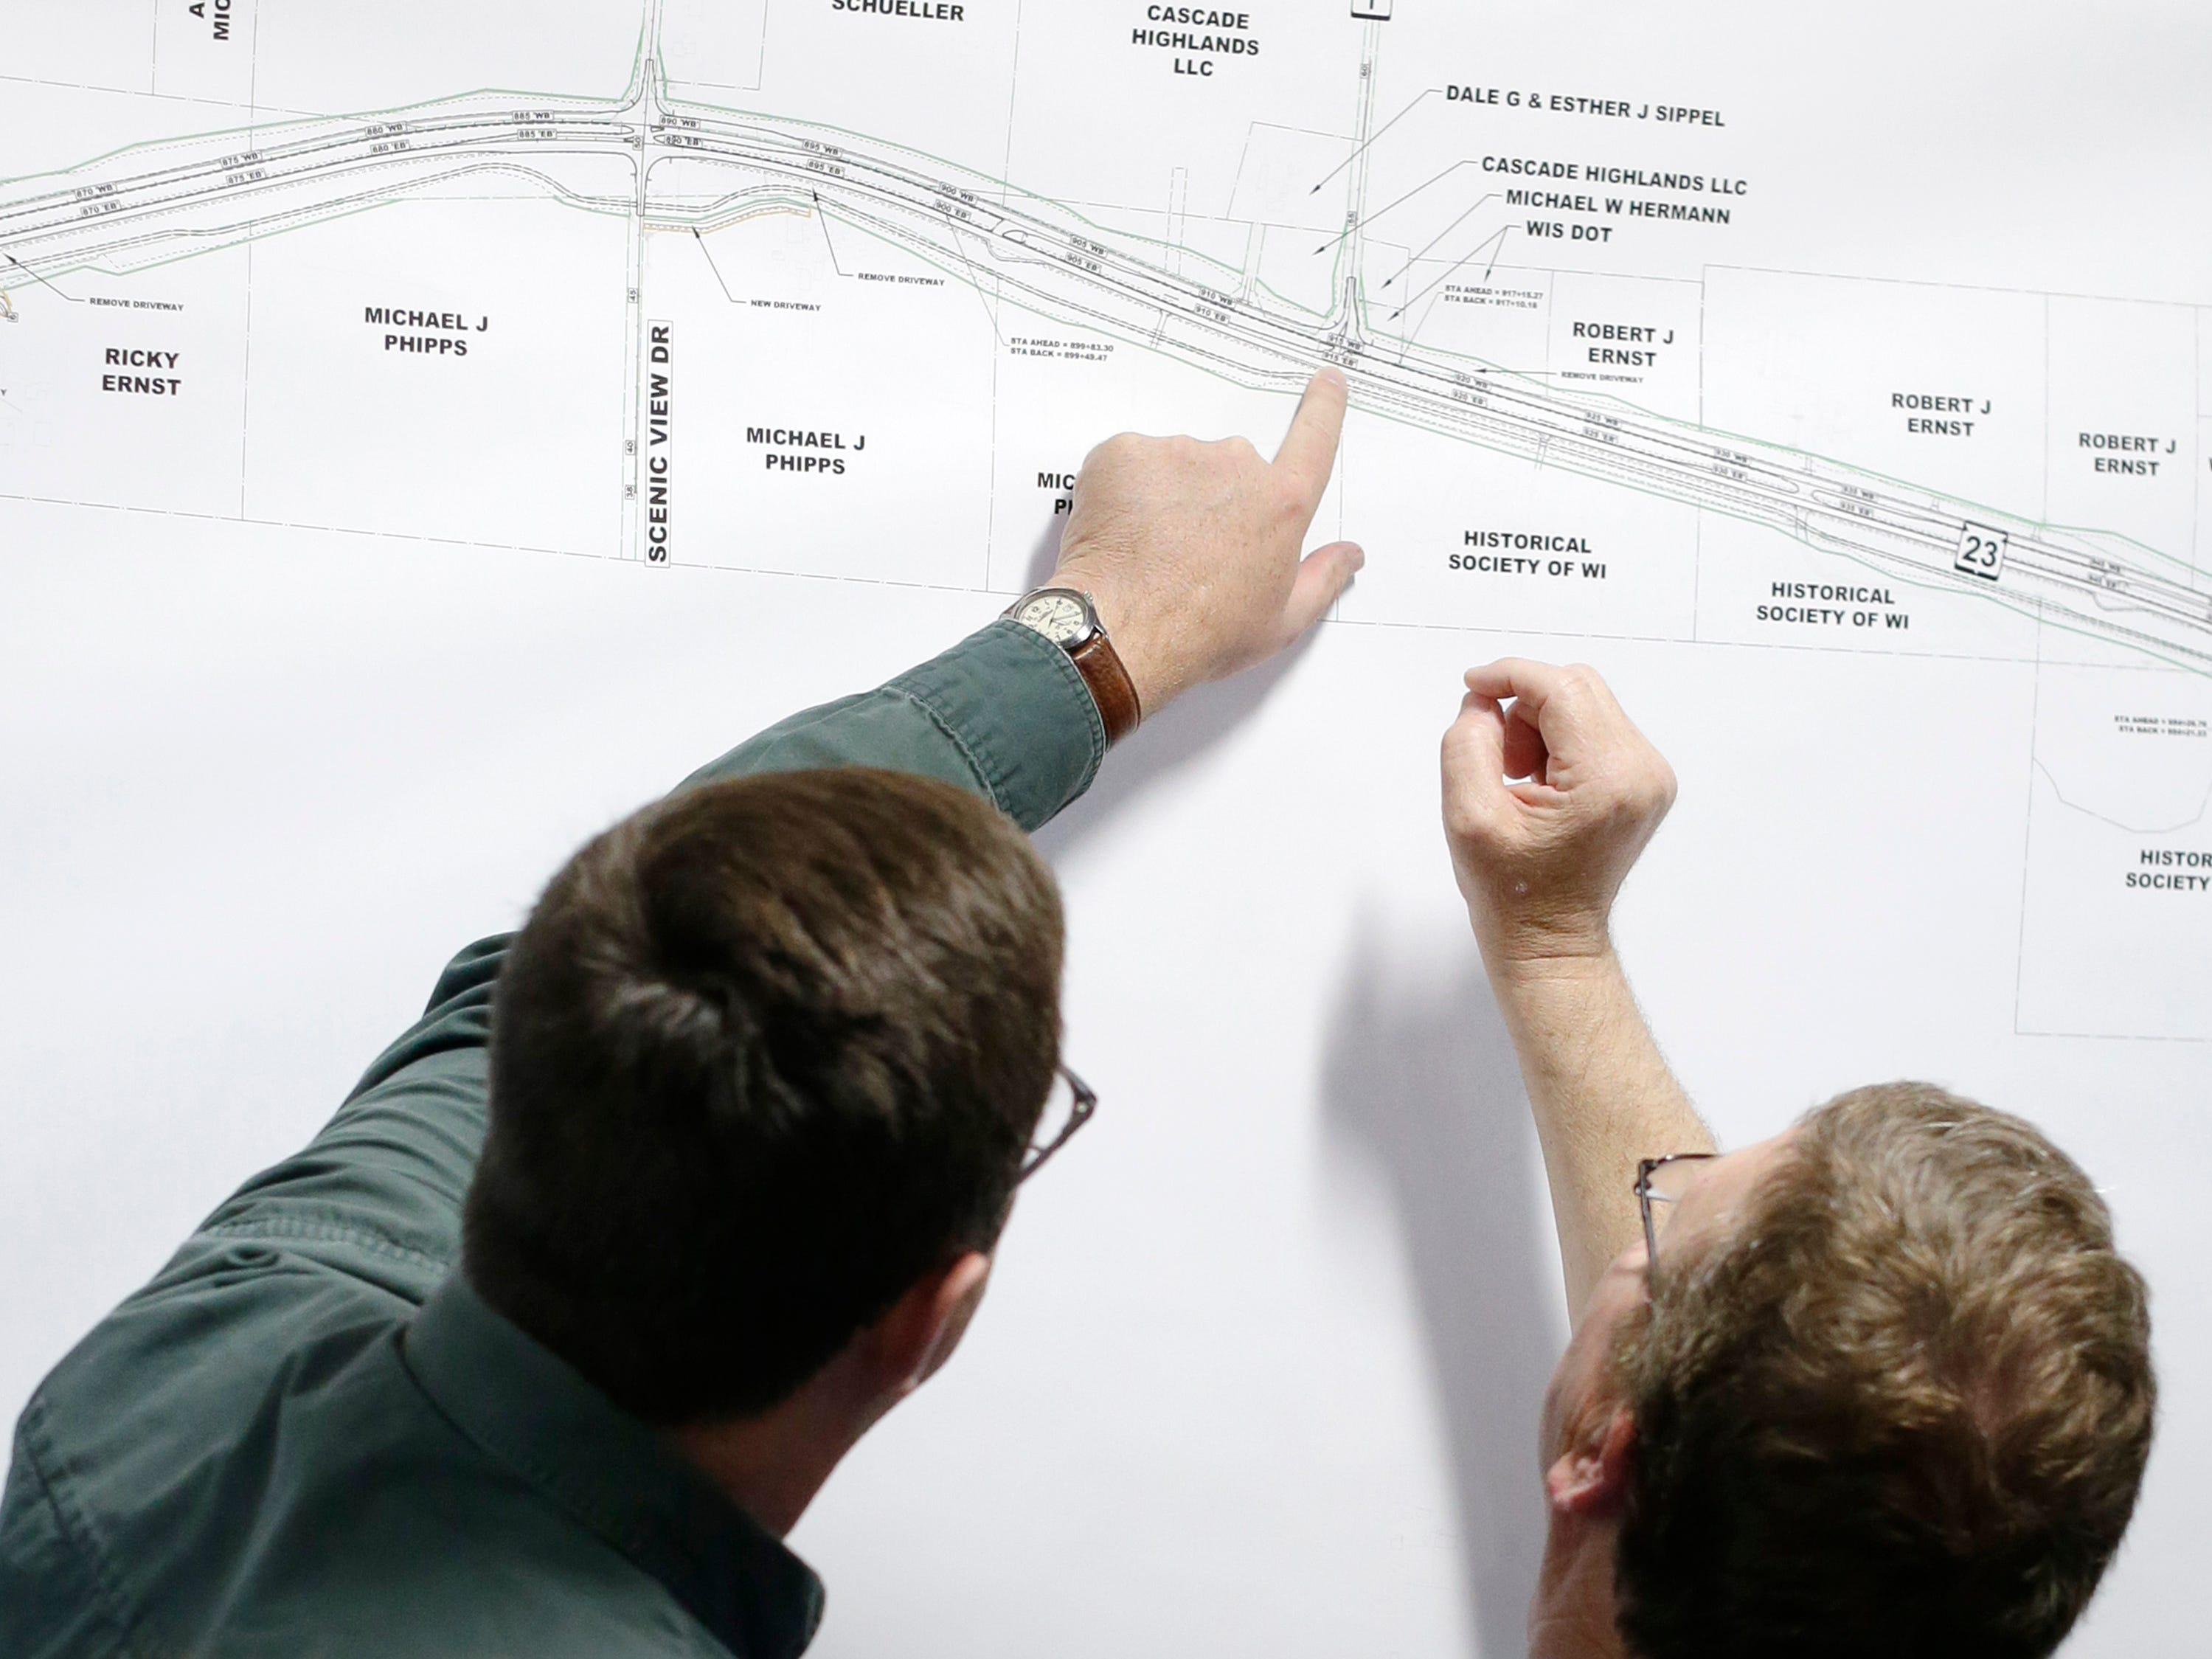 Relyco's Tom Ceske, left, looks over plans with a resident along the state Highway 23 four-lane construction project area during a meeting at the Sheboygan County Transportation facility, Thursday, May 9, 2019, in Plymouth, Wis. Relyco is the contractor for the project.